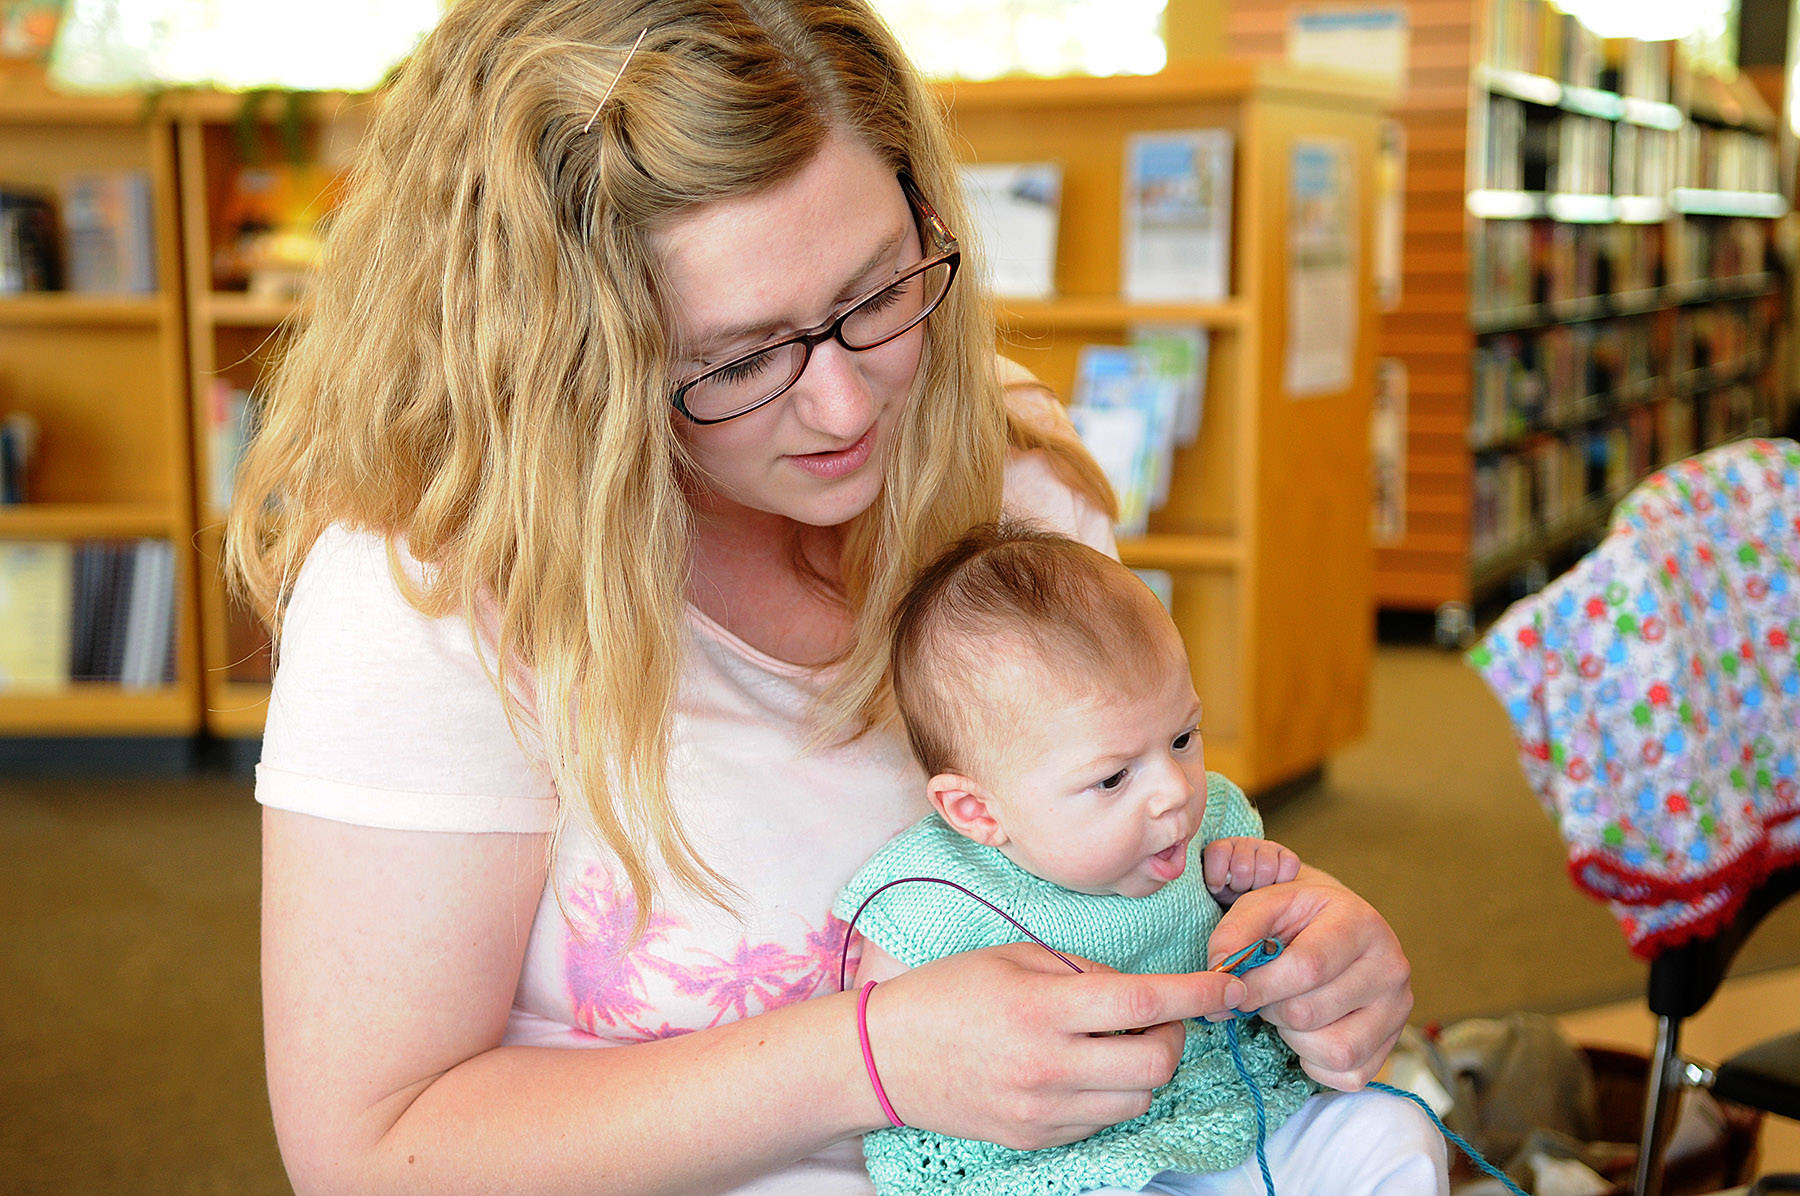 Karen Page knits at the Sardis Library while holding her daughter Rosalie during Worldwide Knit in Public Day on June 17, 2015 in Chilliwack. Saturday, June 12, 2021 is Worldwide Knit in Public Day. (Jenna Hauck/ Chilliwack Progress file)